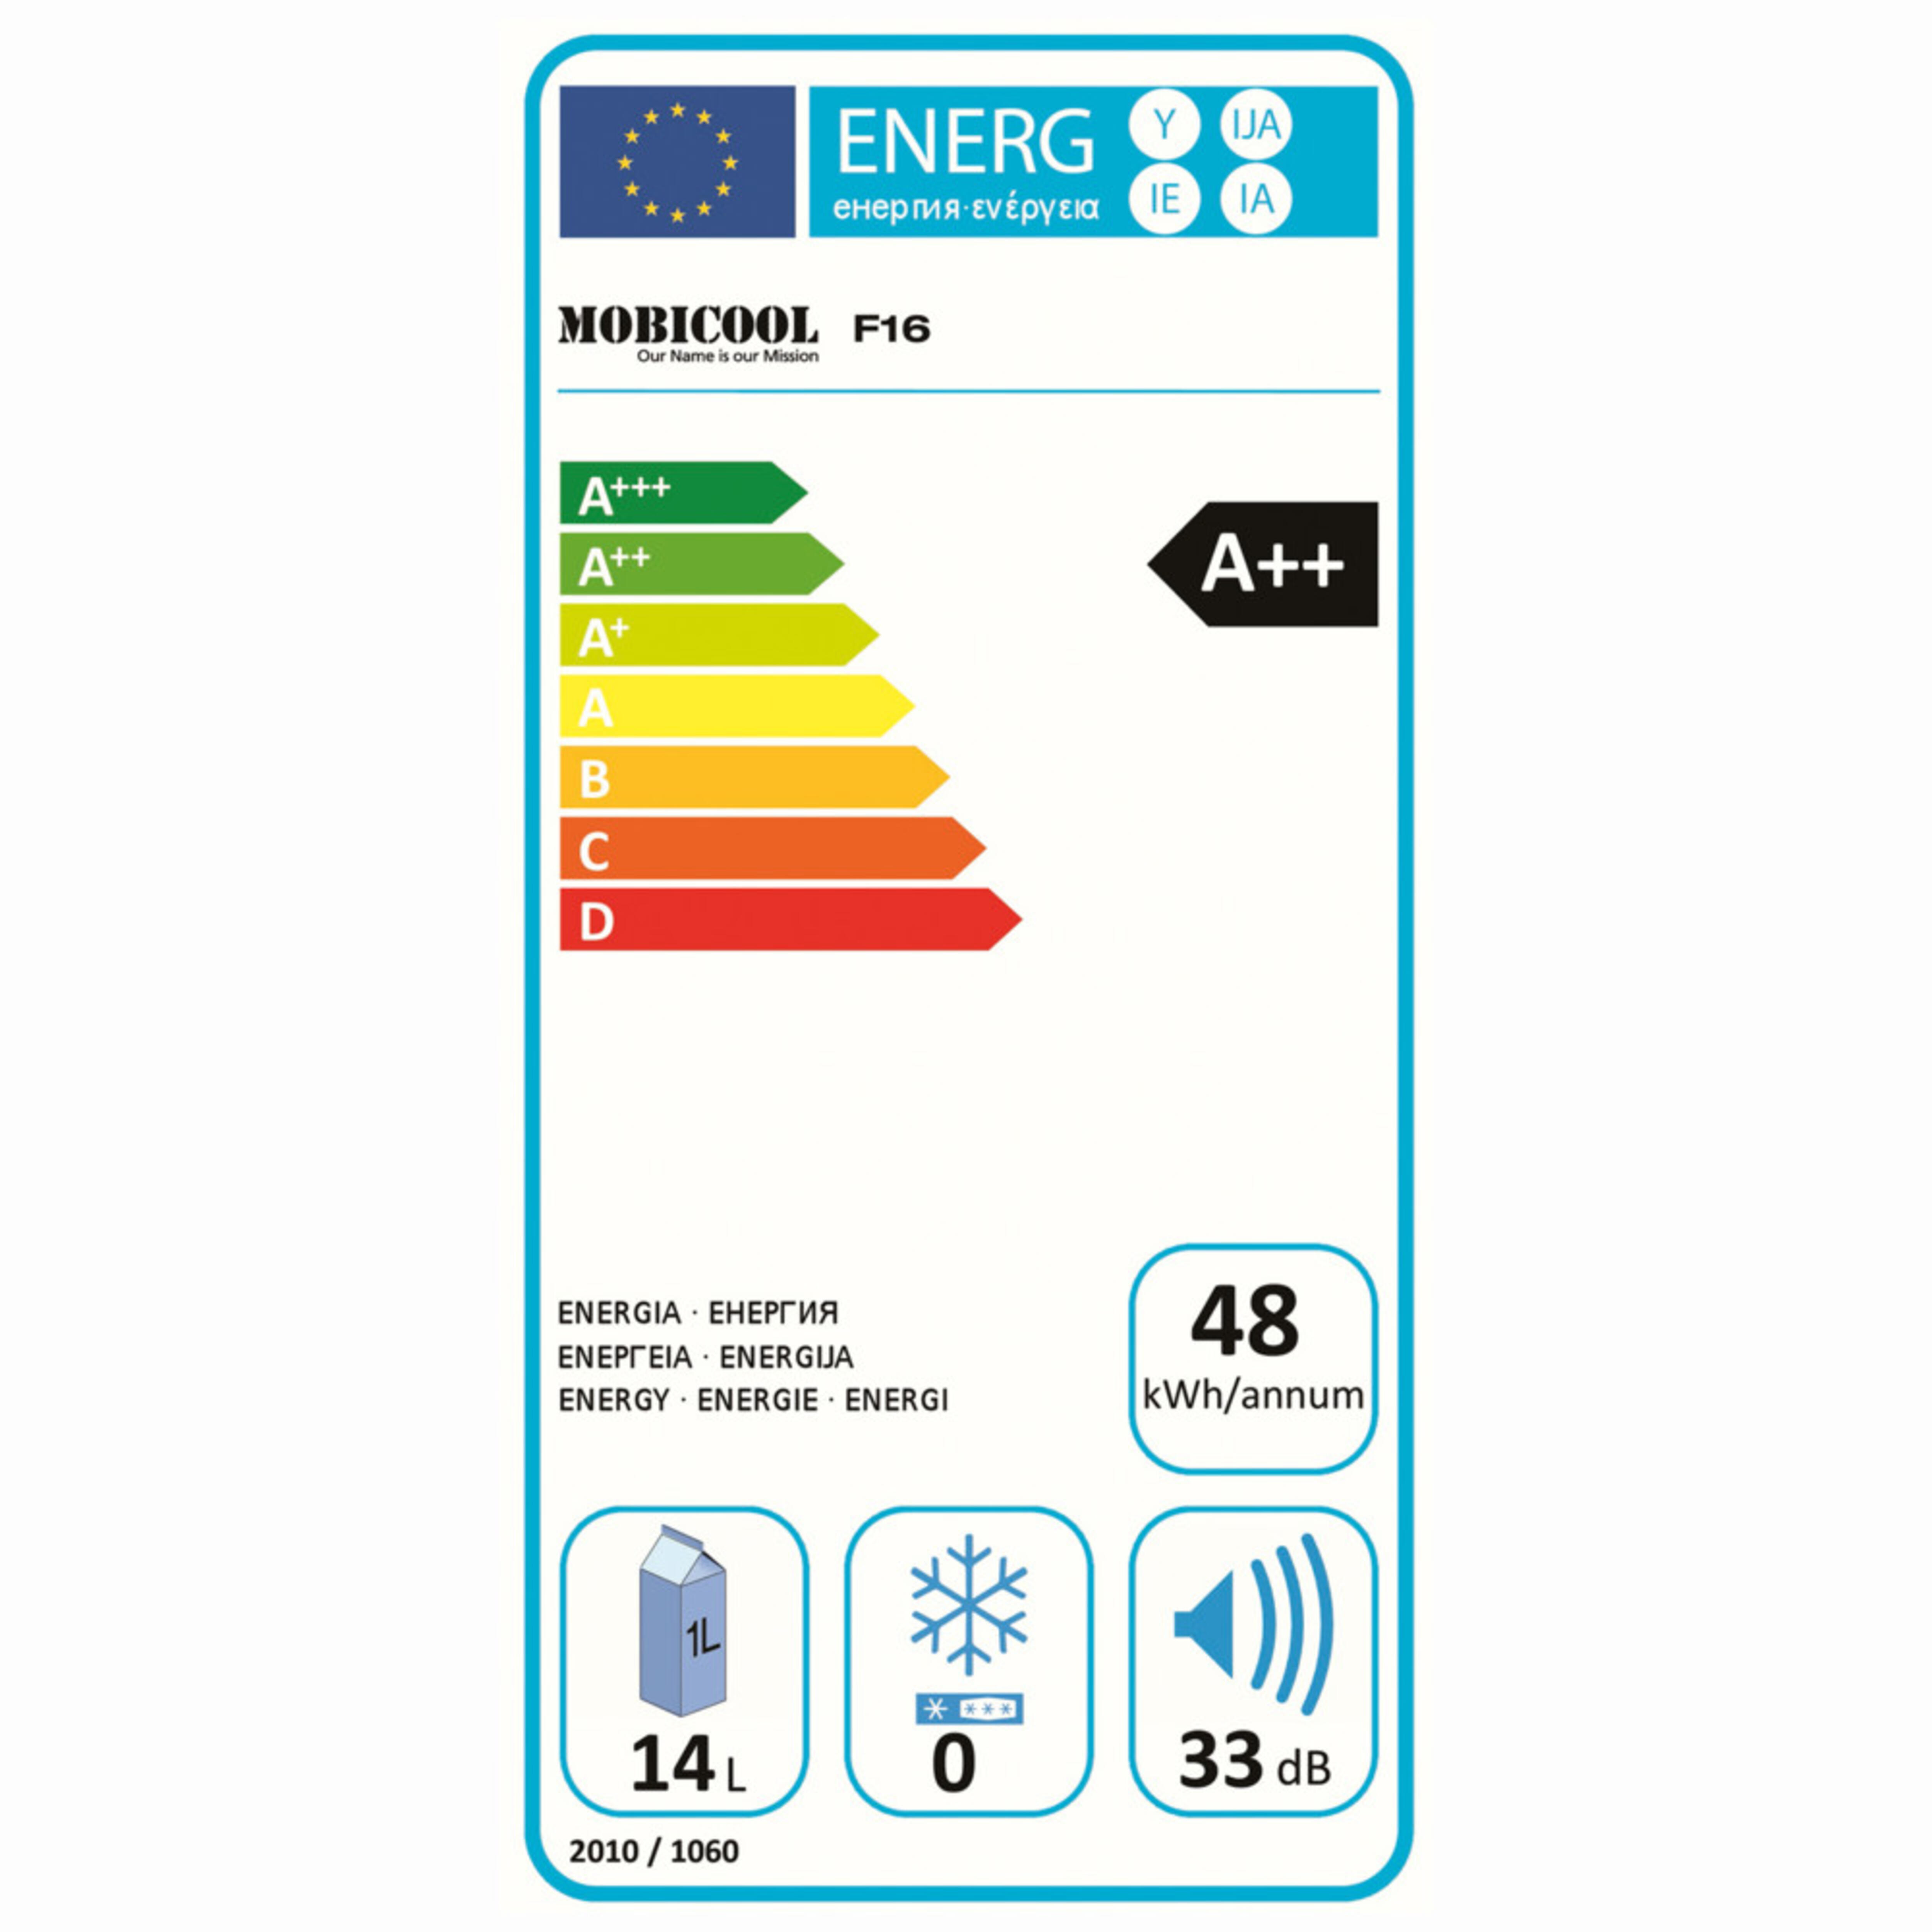 Mobicool F16 Energy label